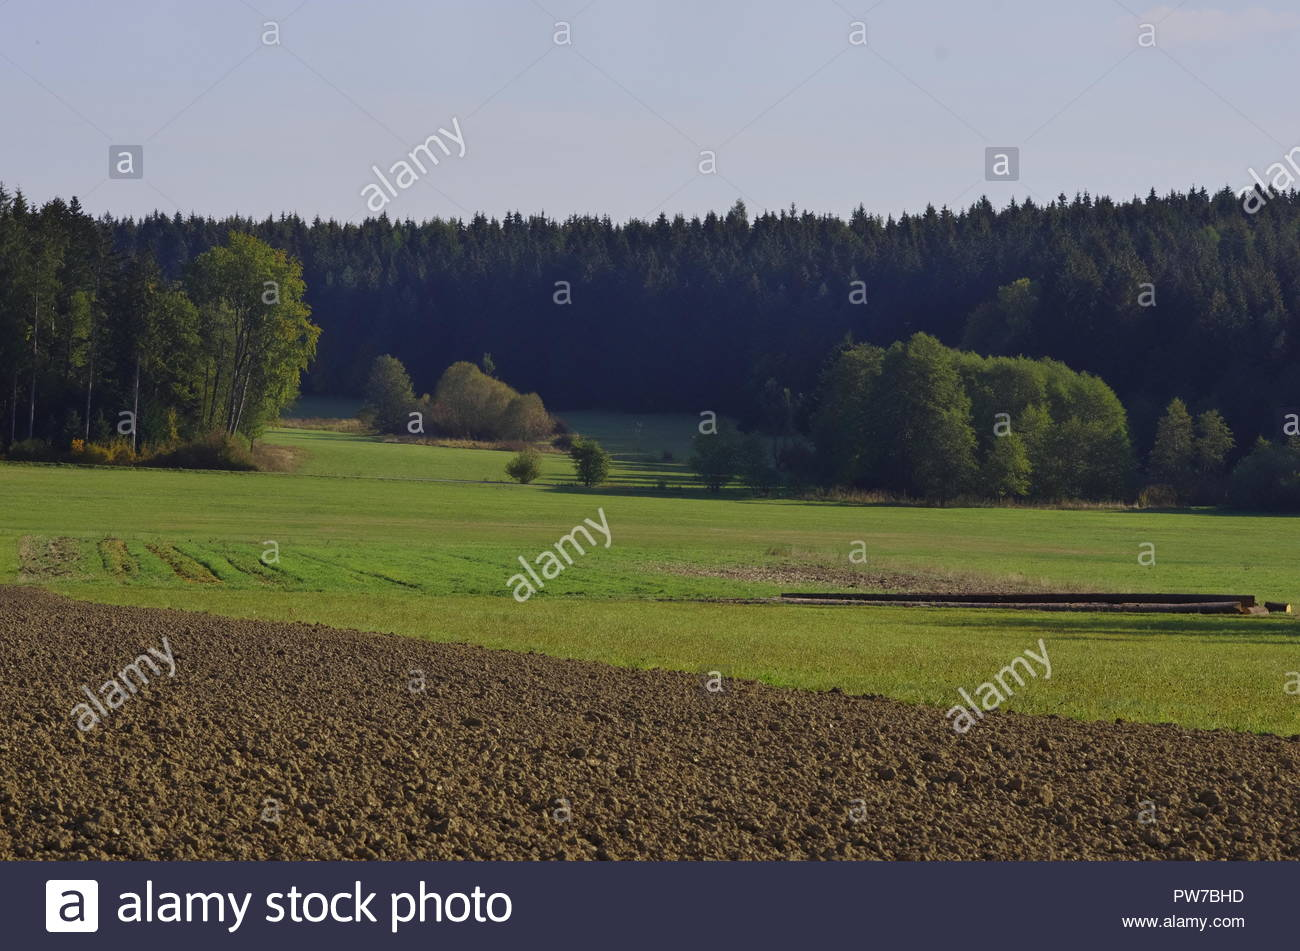 Landscape with trees, meadows and fields - Stock Image